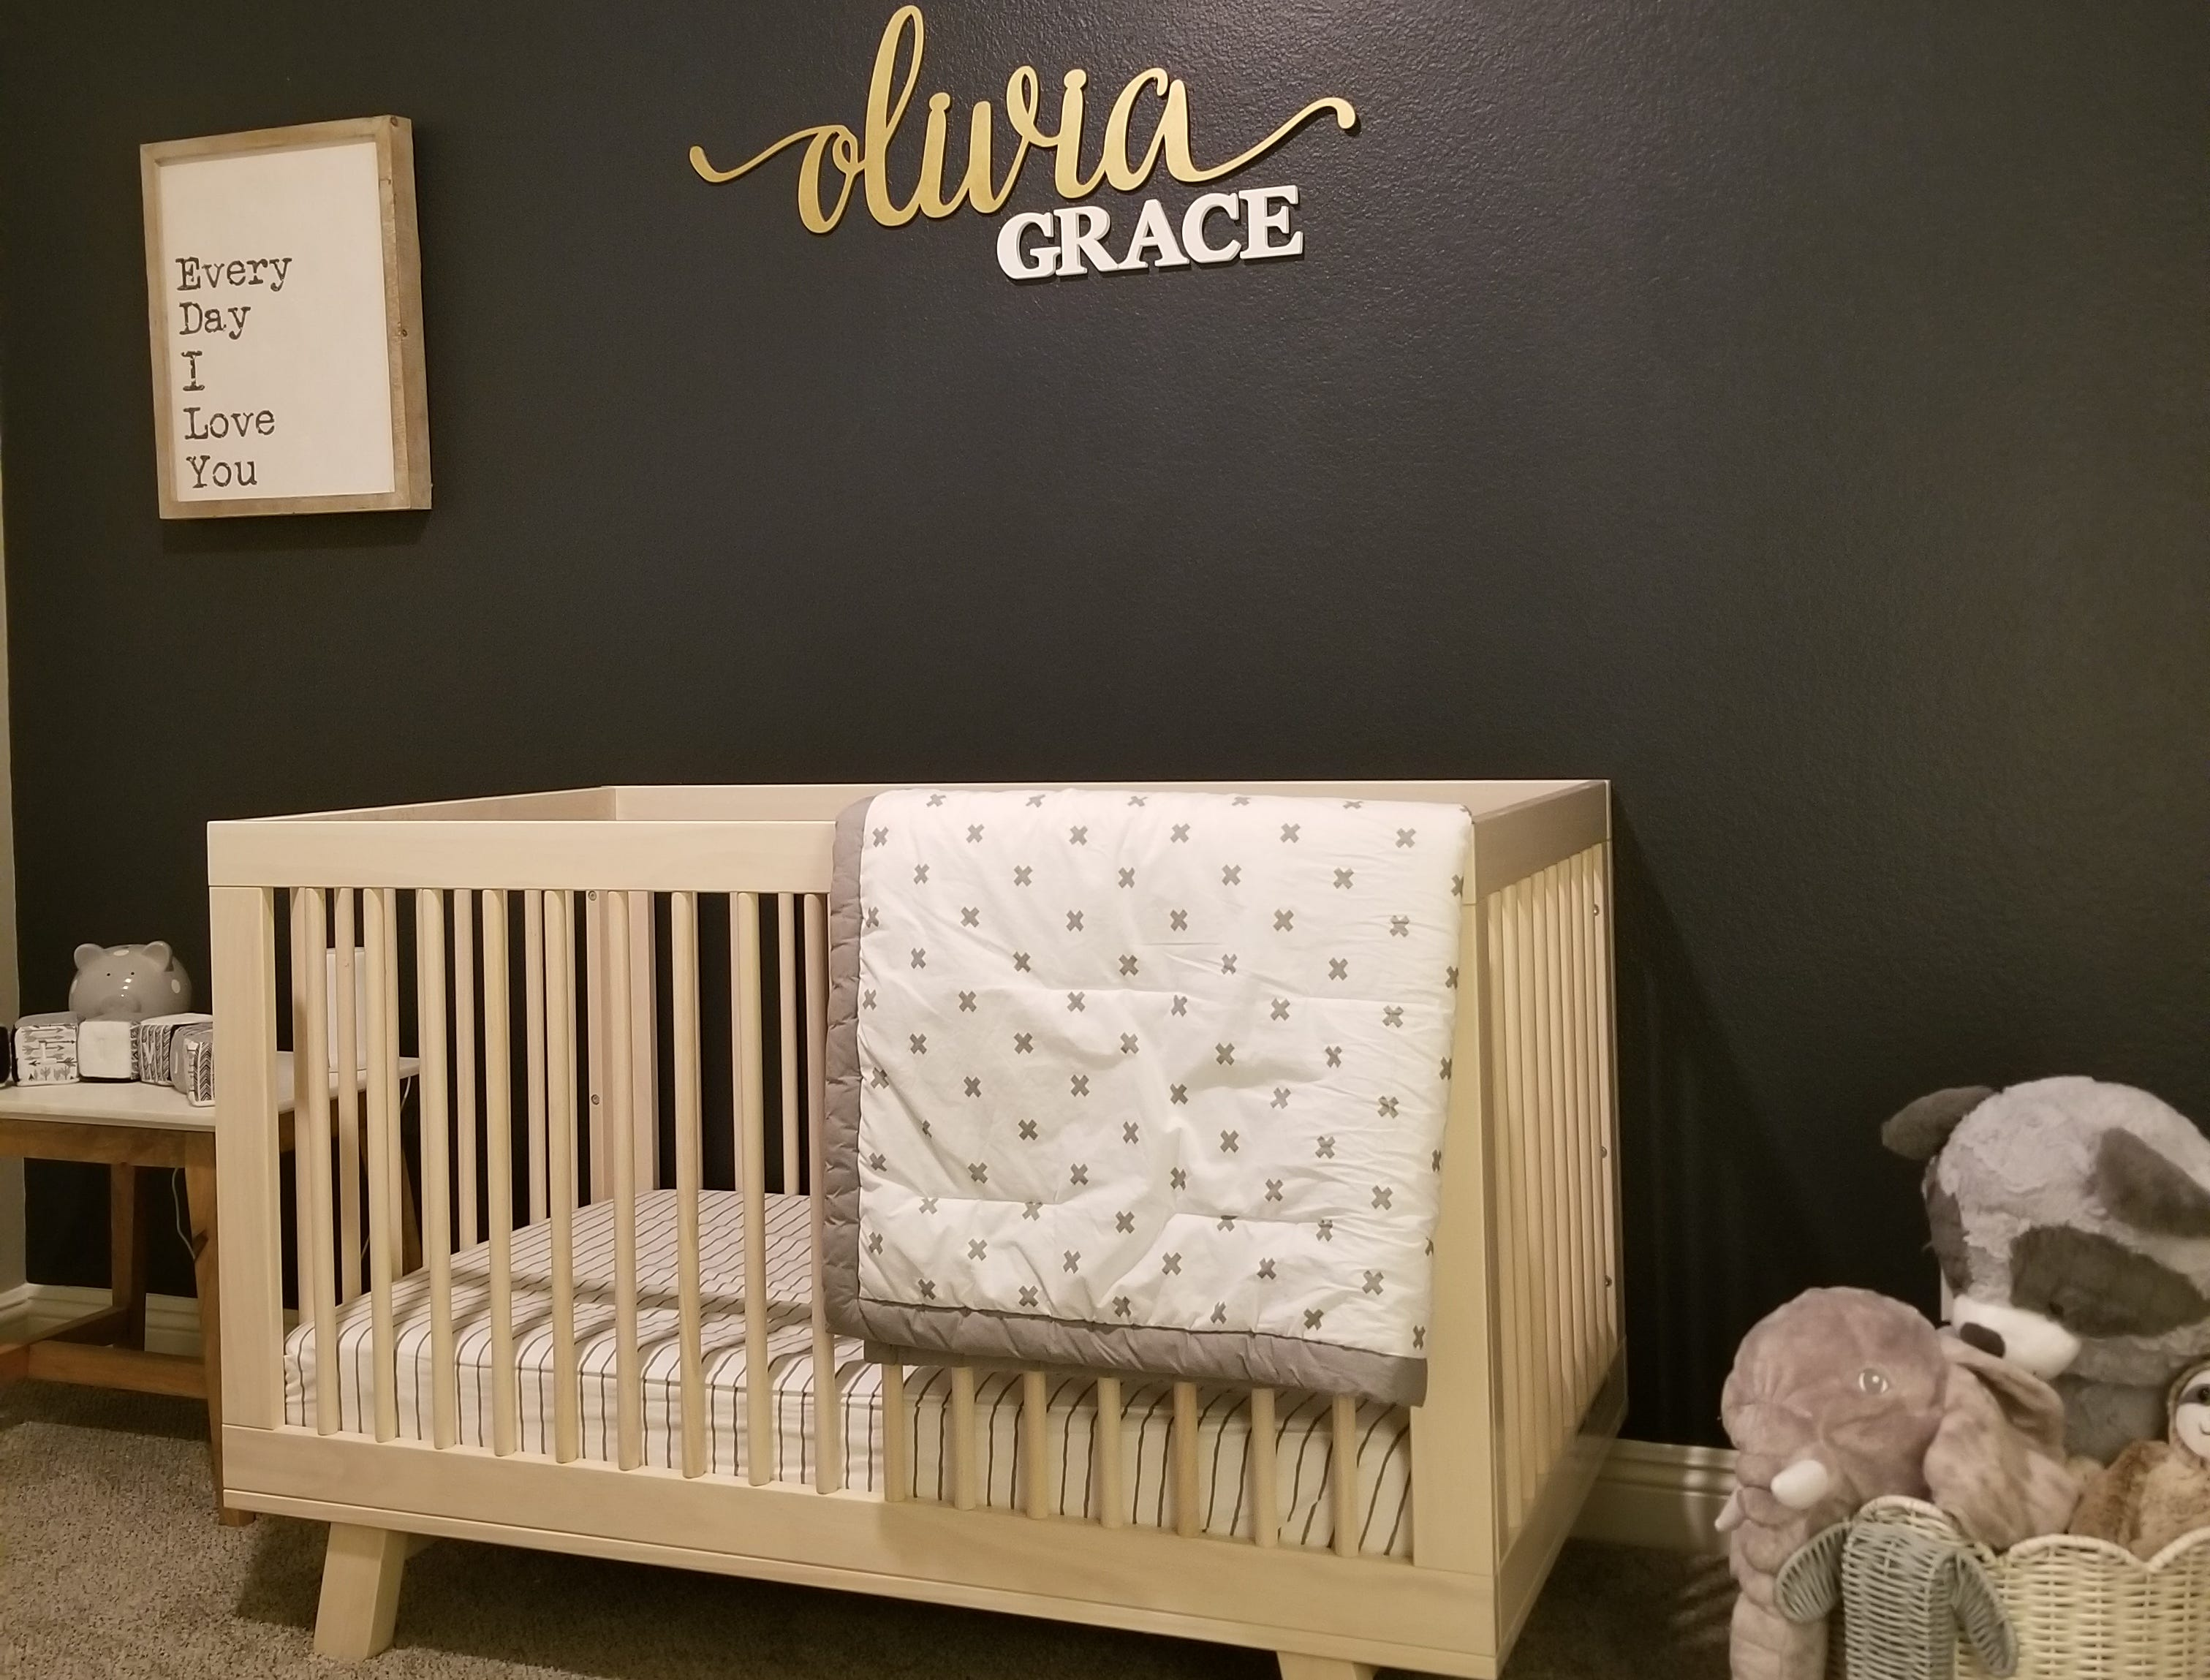 The nursery for their daughter, Olivia Grace, is one of sophistication. While lending to the color scheme throughout the couple's home, a midnight blue accent wall with lettering elegantly announcing its treasured occupant frames the modern box crib.  Whimsical accruements provide a magical respite for this blessed child.